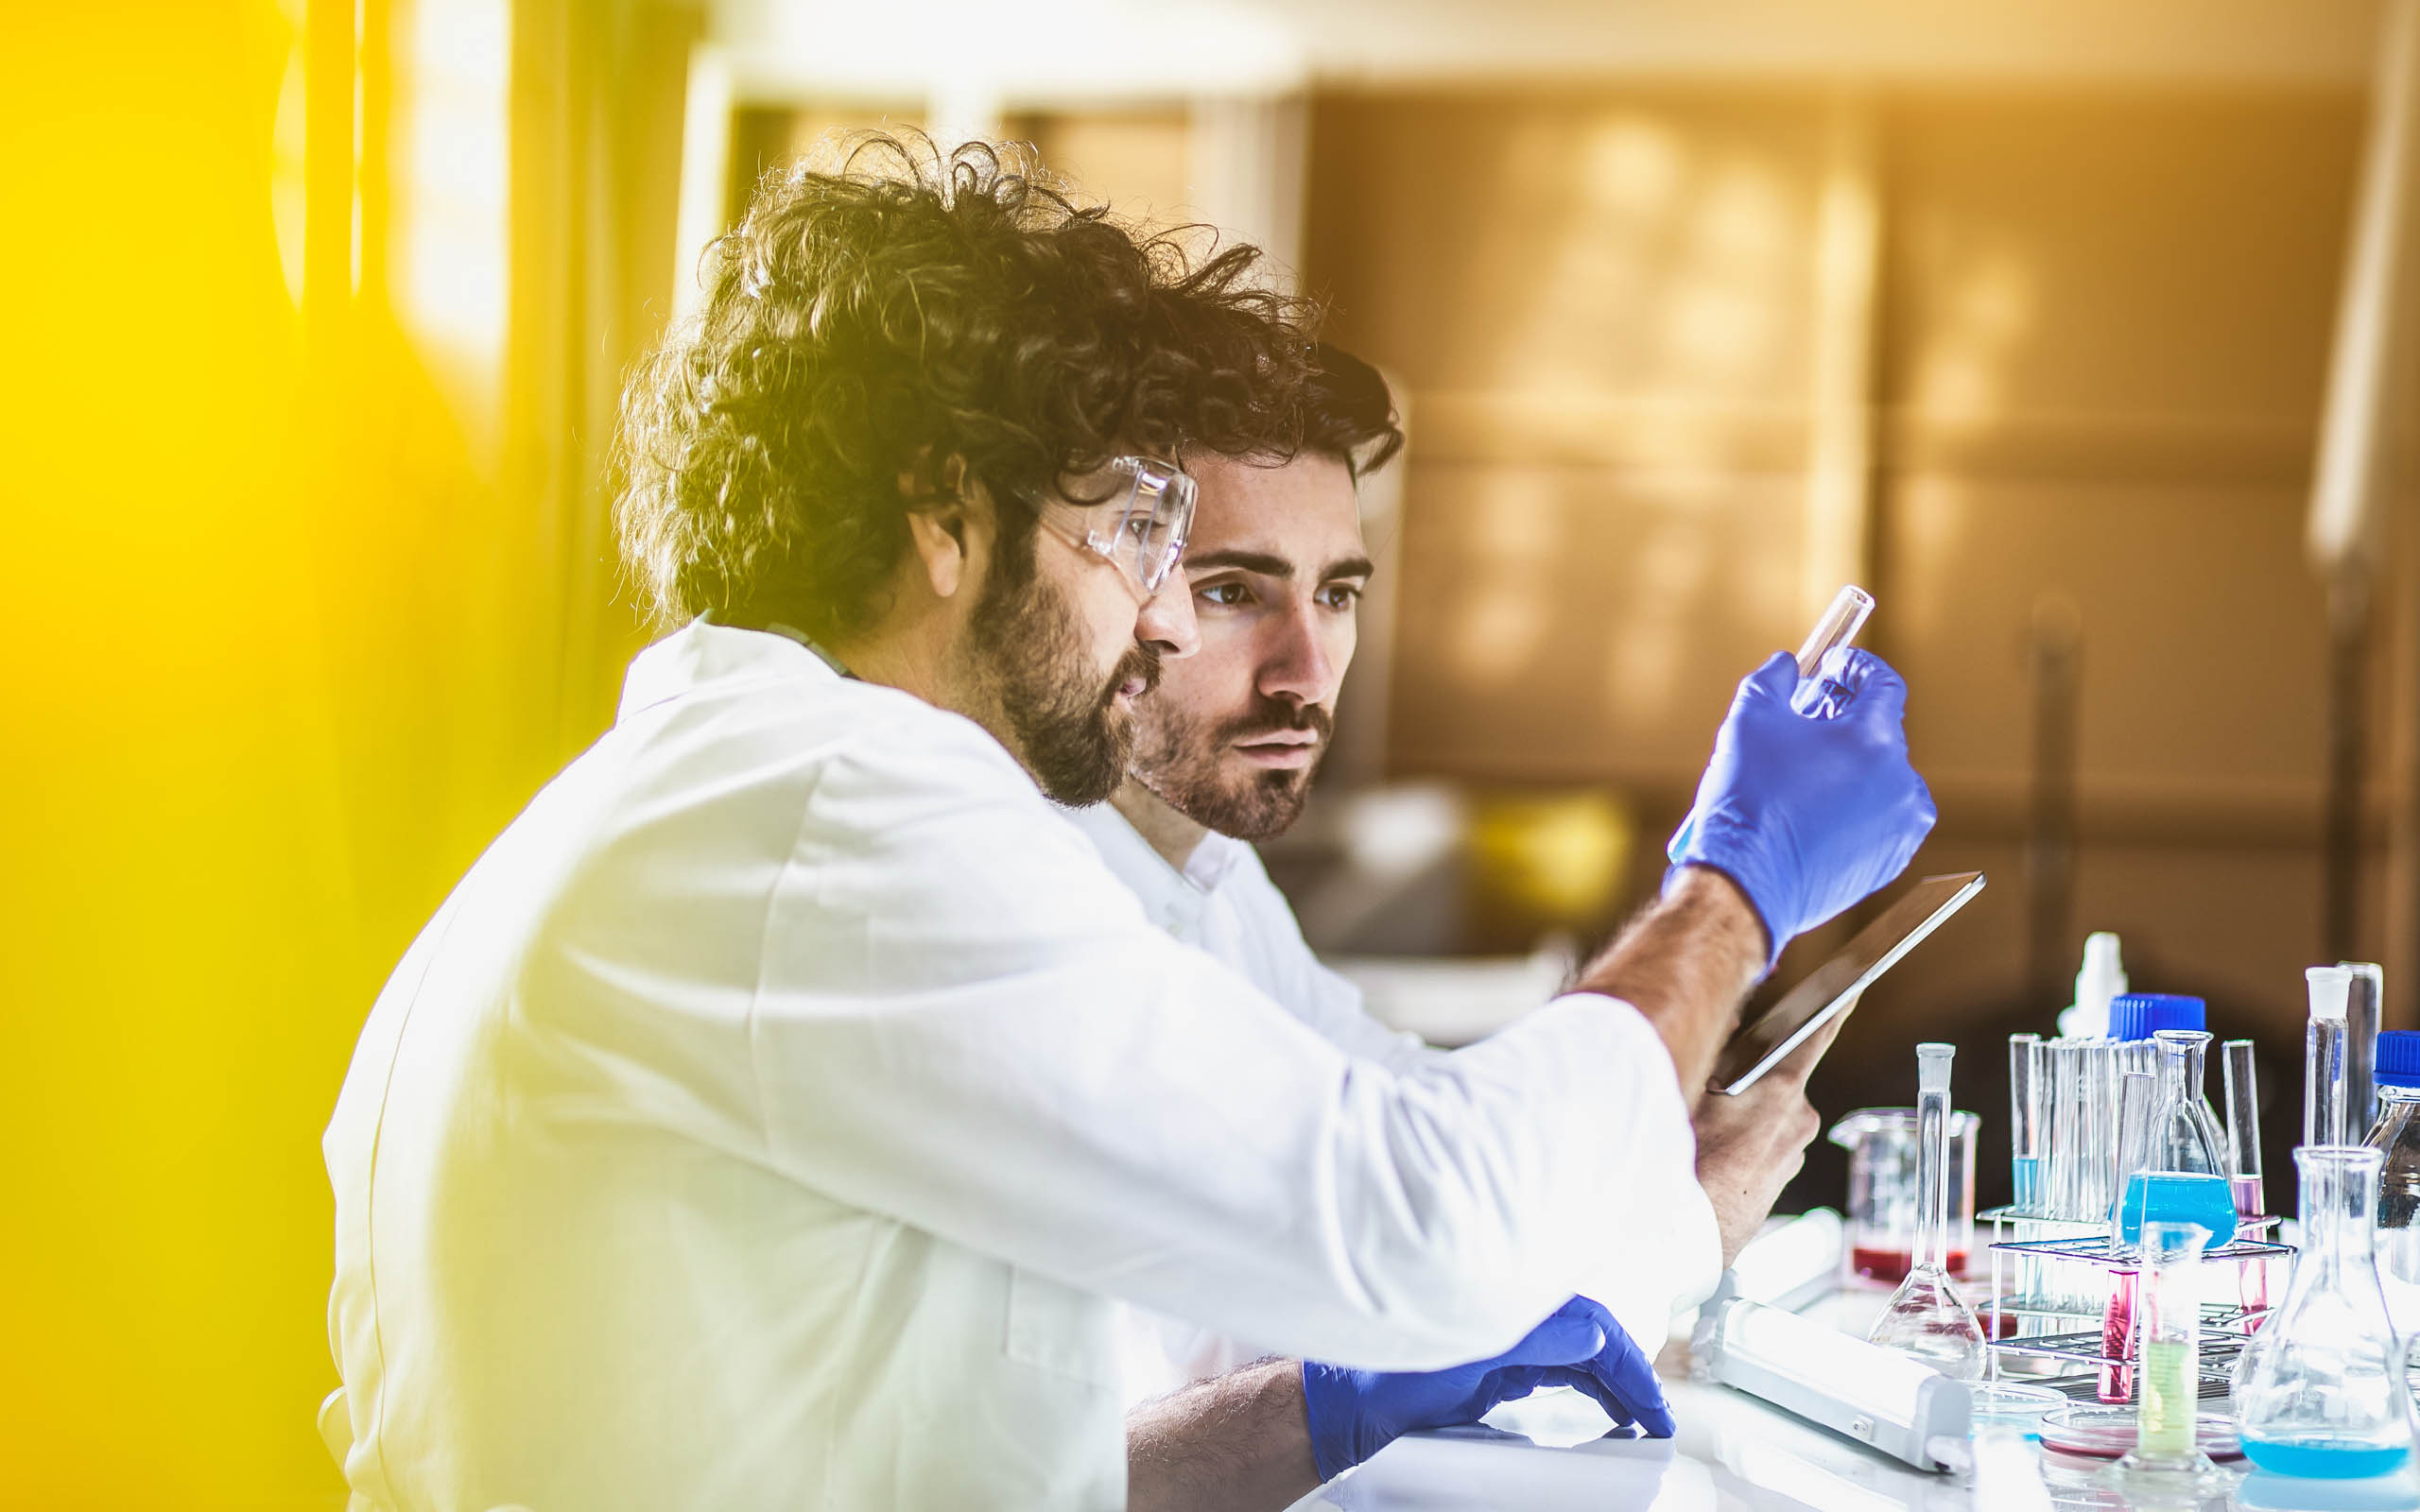 Two male scientists using cell therapy software on a tablet to record testing data.